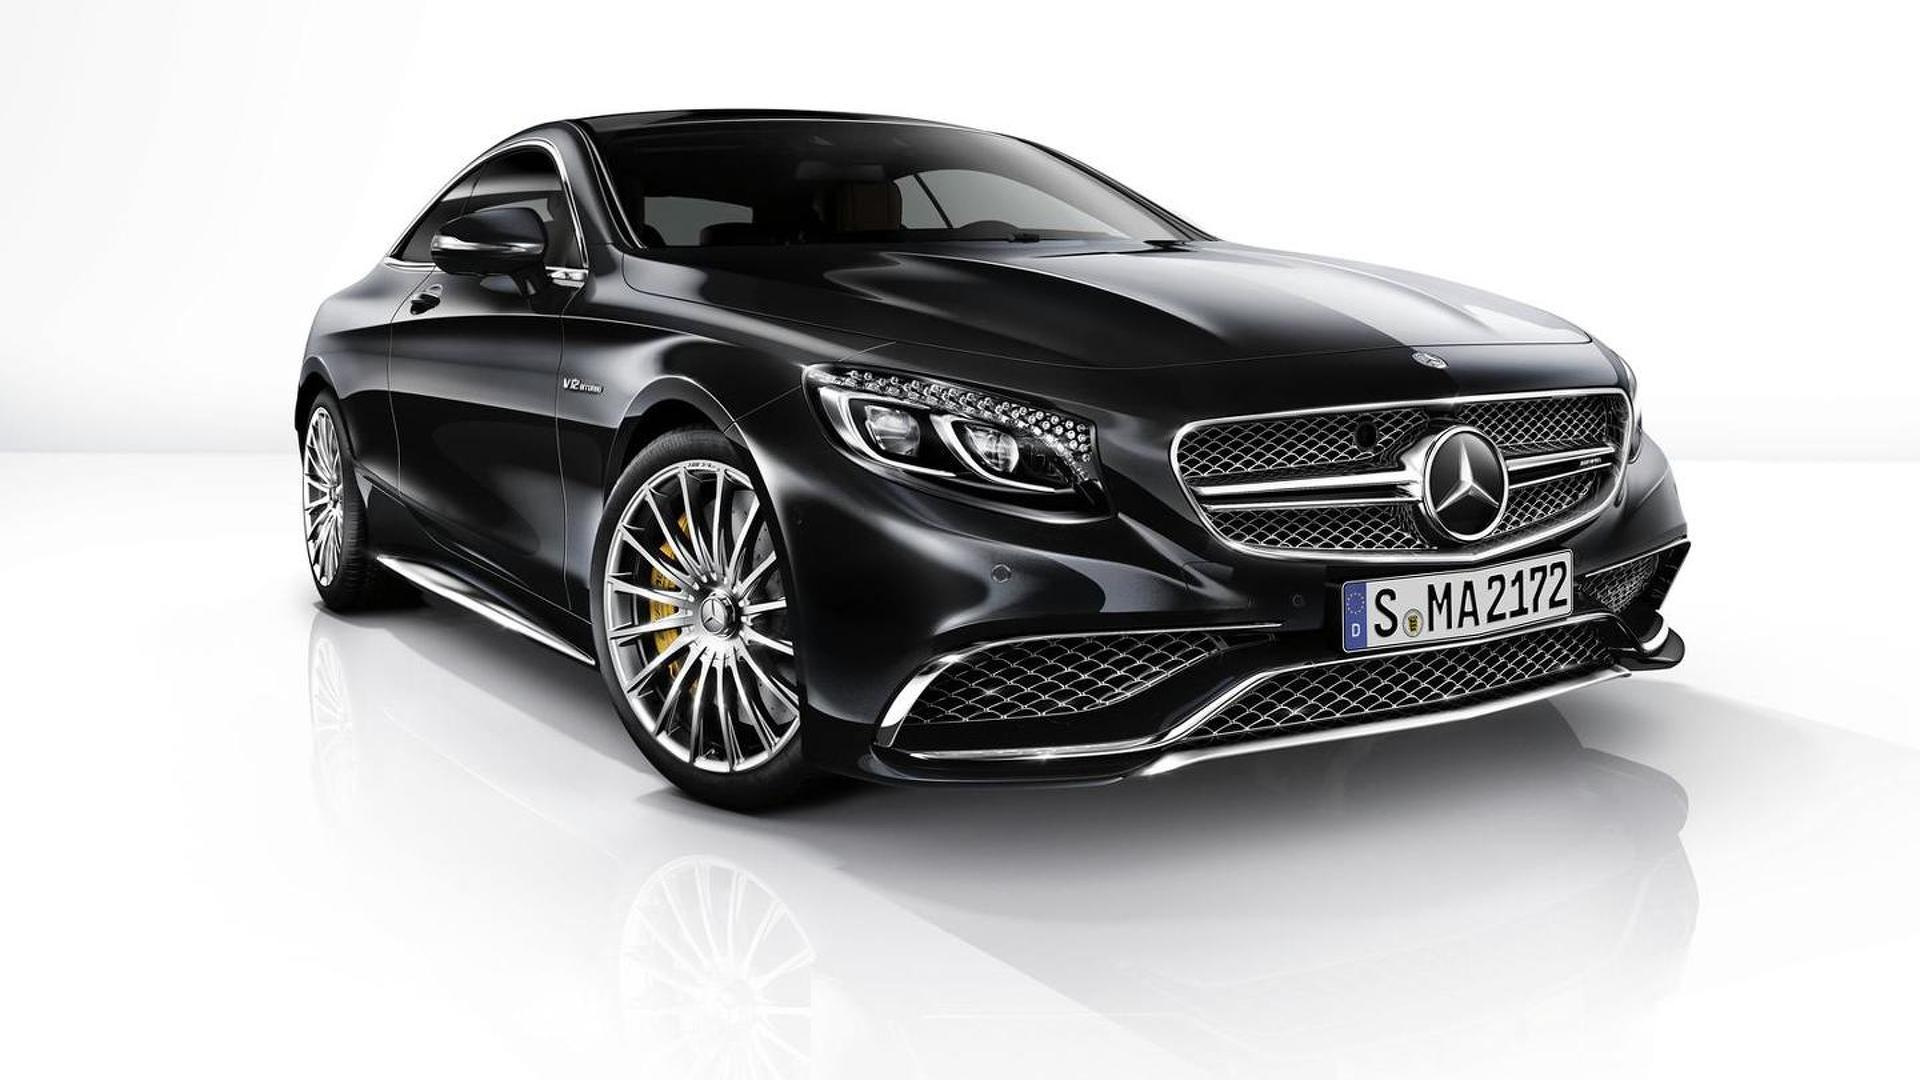 Mercedes-Benz S65 AMG Coupe officially revealed with 630 PS V12 engine